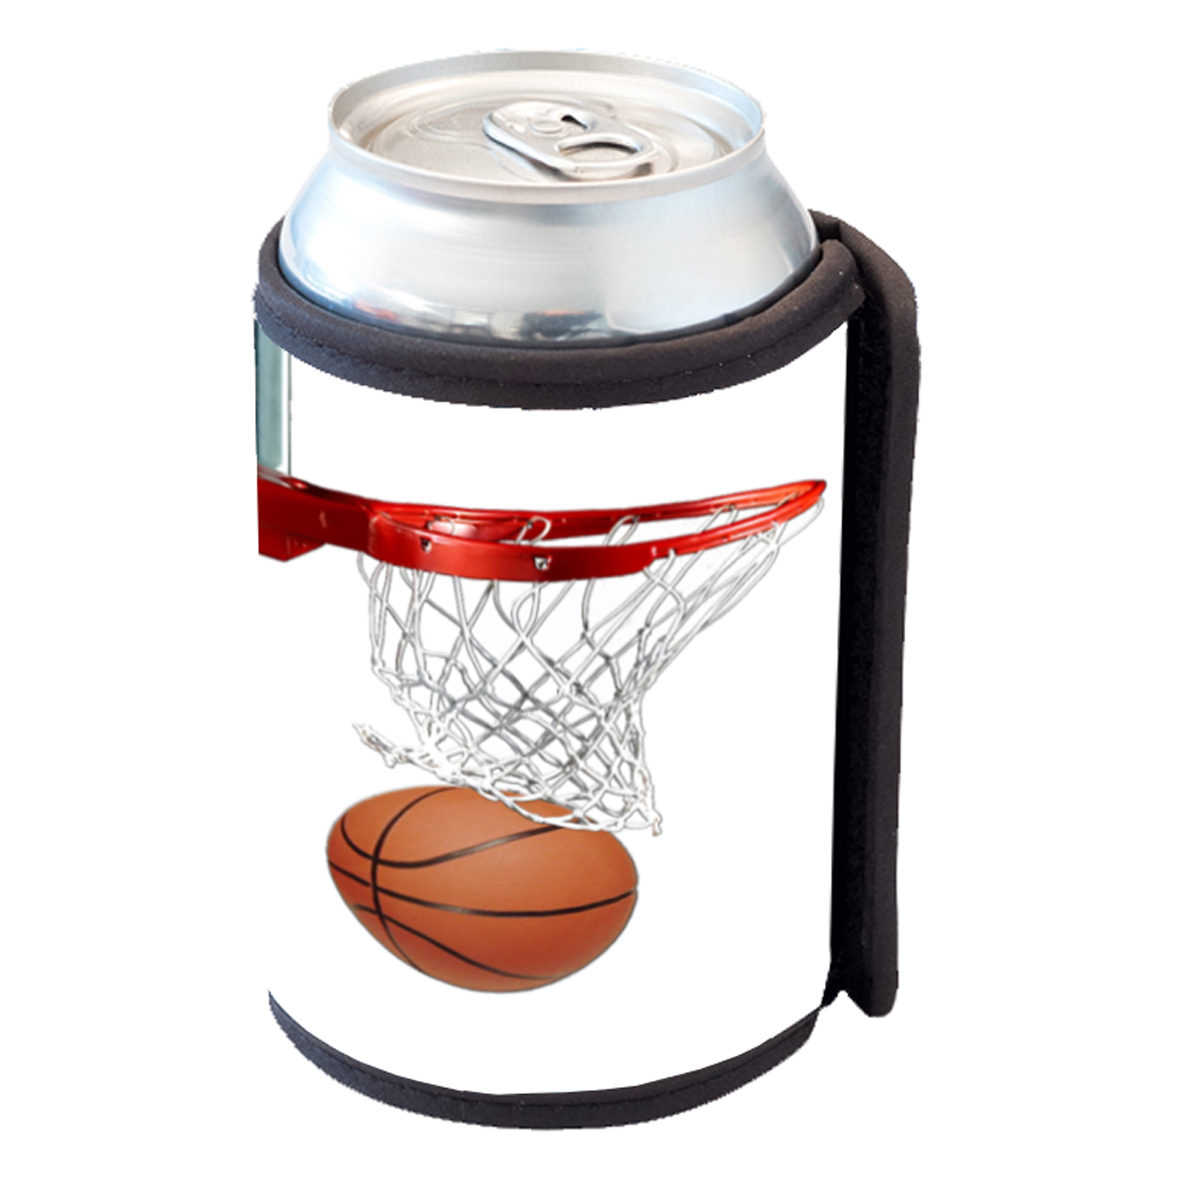 KuzmarK Insulated Drink Can Cooler Hugger - Basketball Hoop Basketball